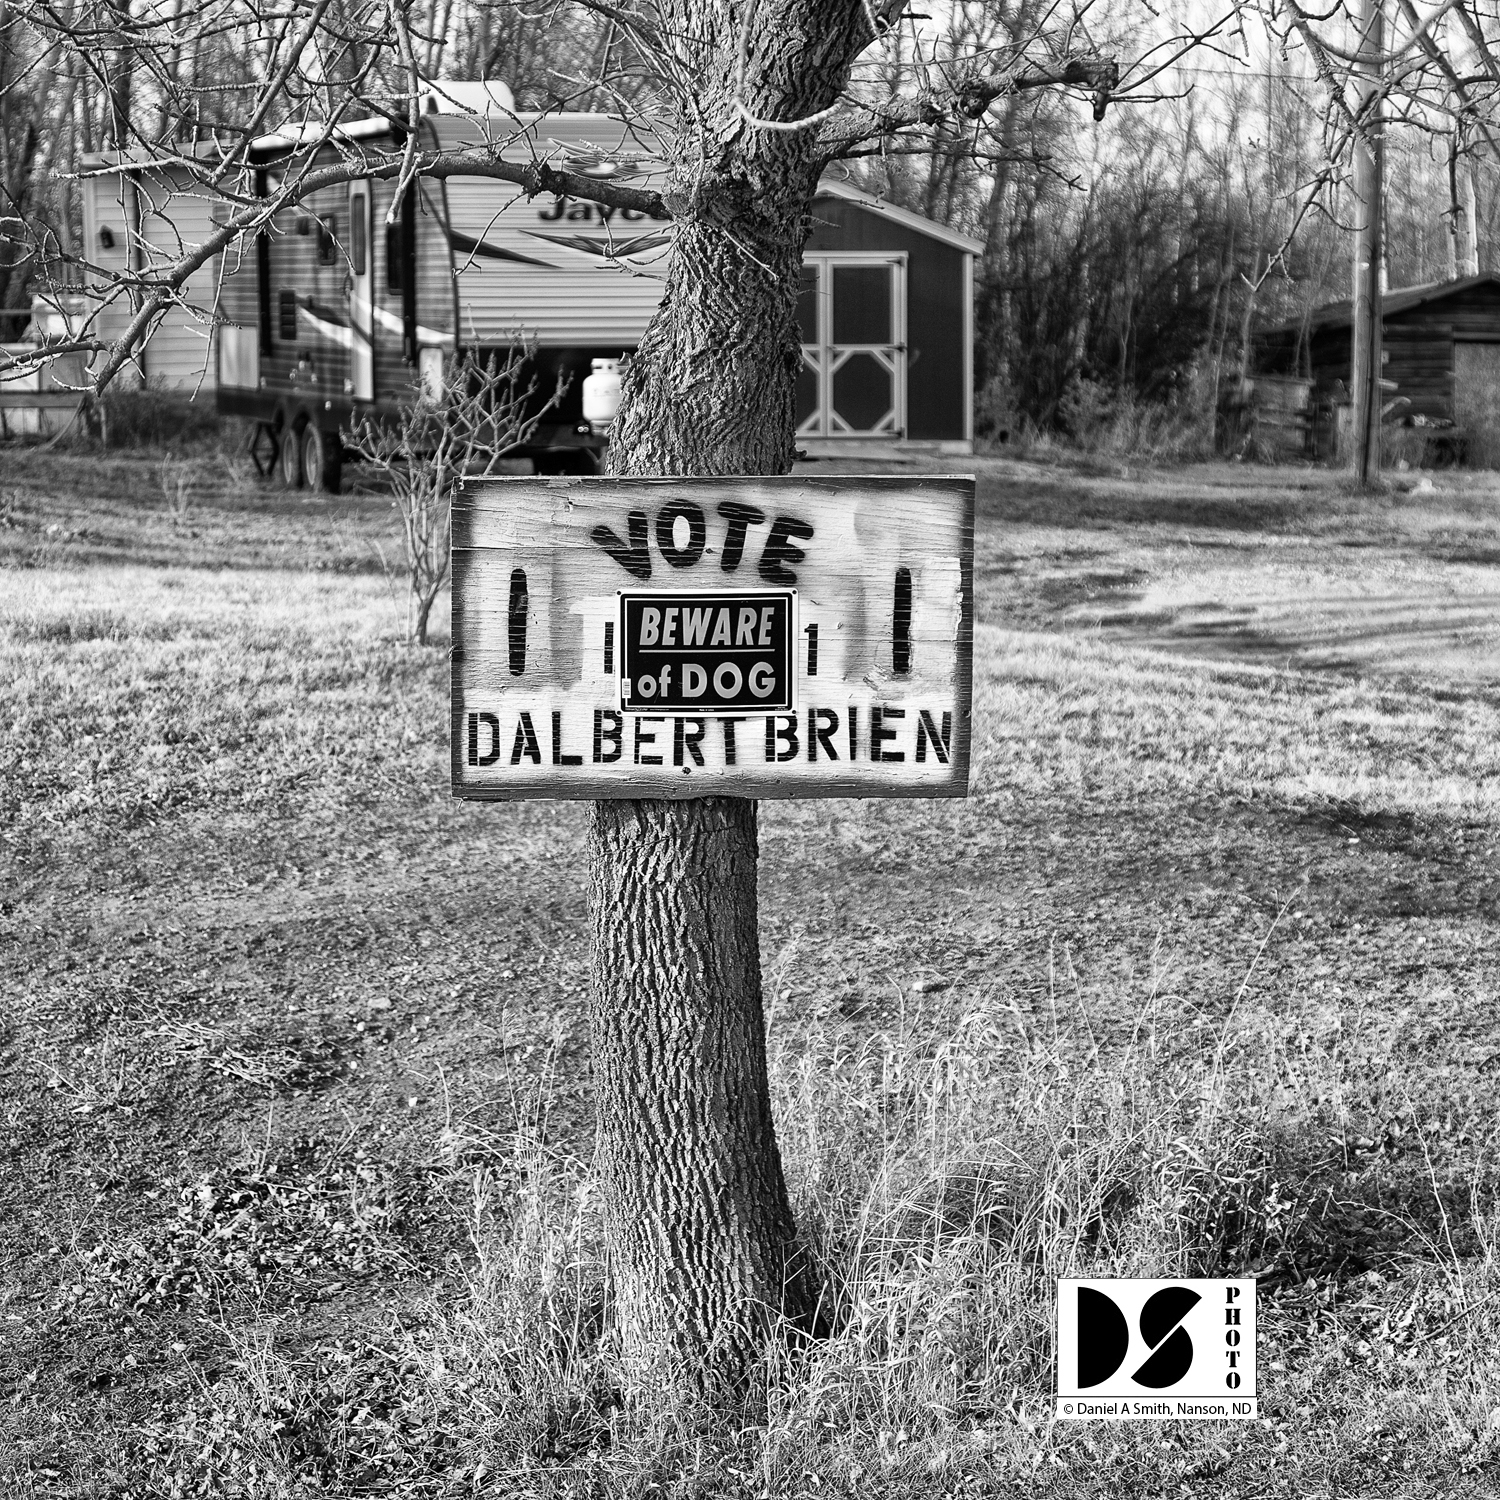 ©2021 Daniel A Smith, Double duty for election signs